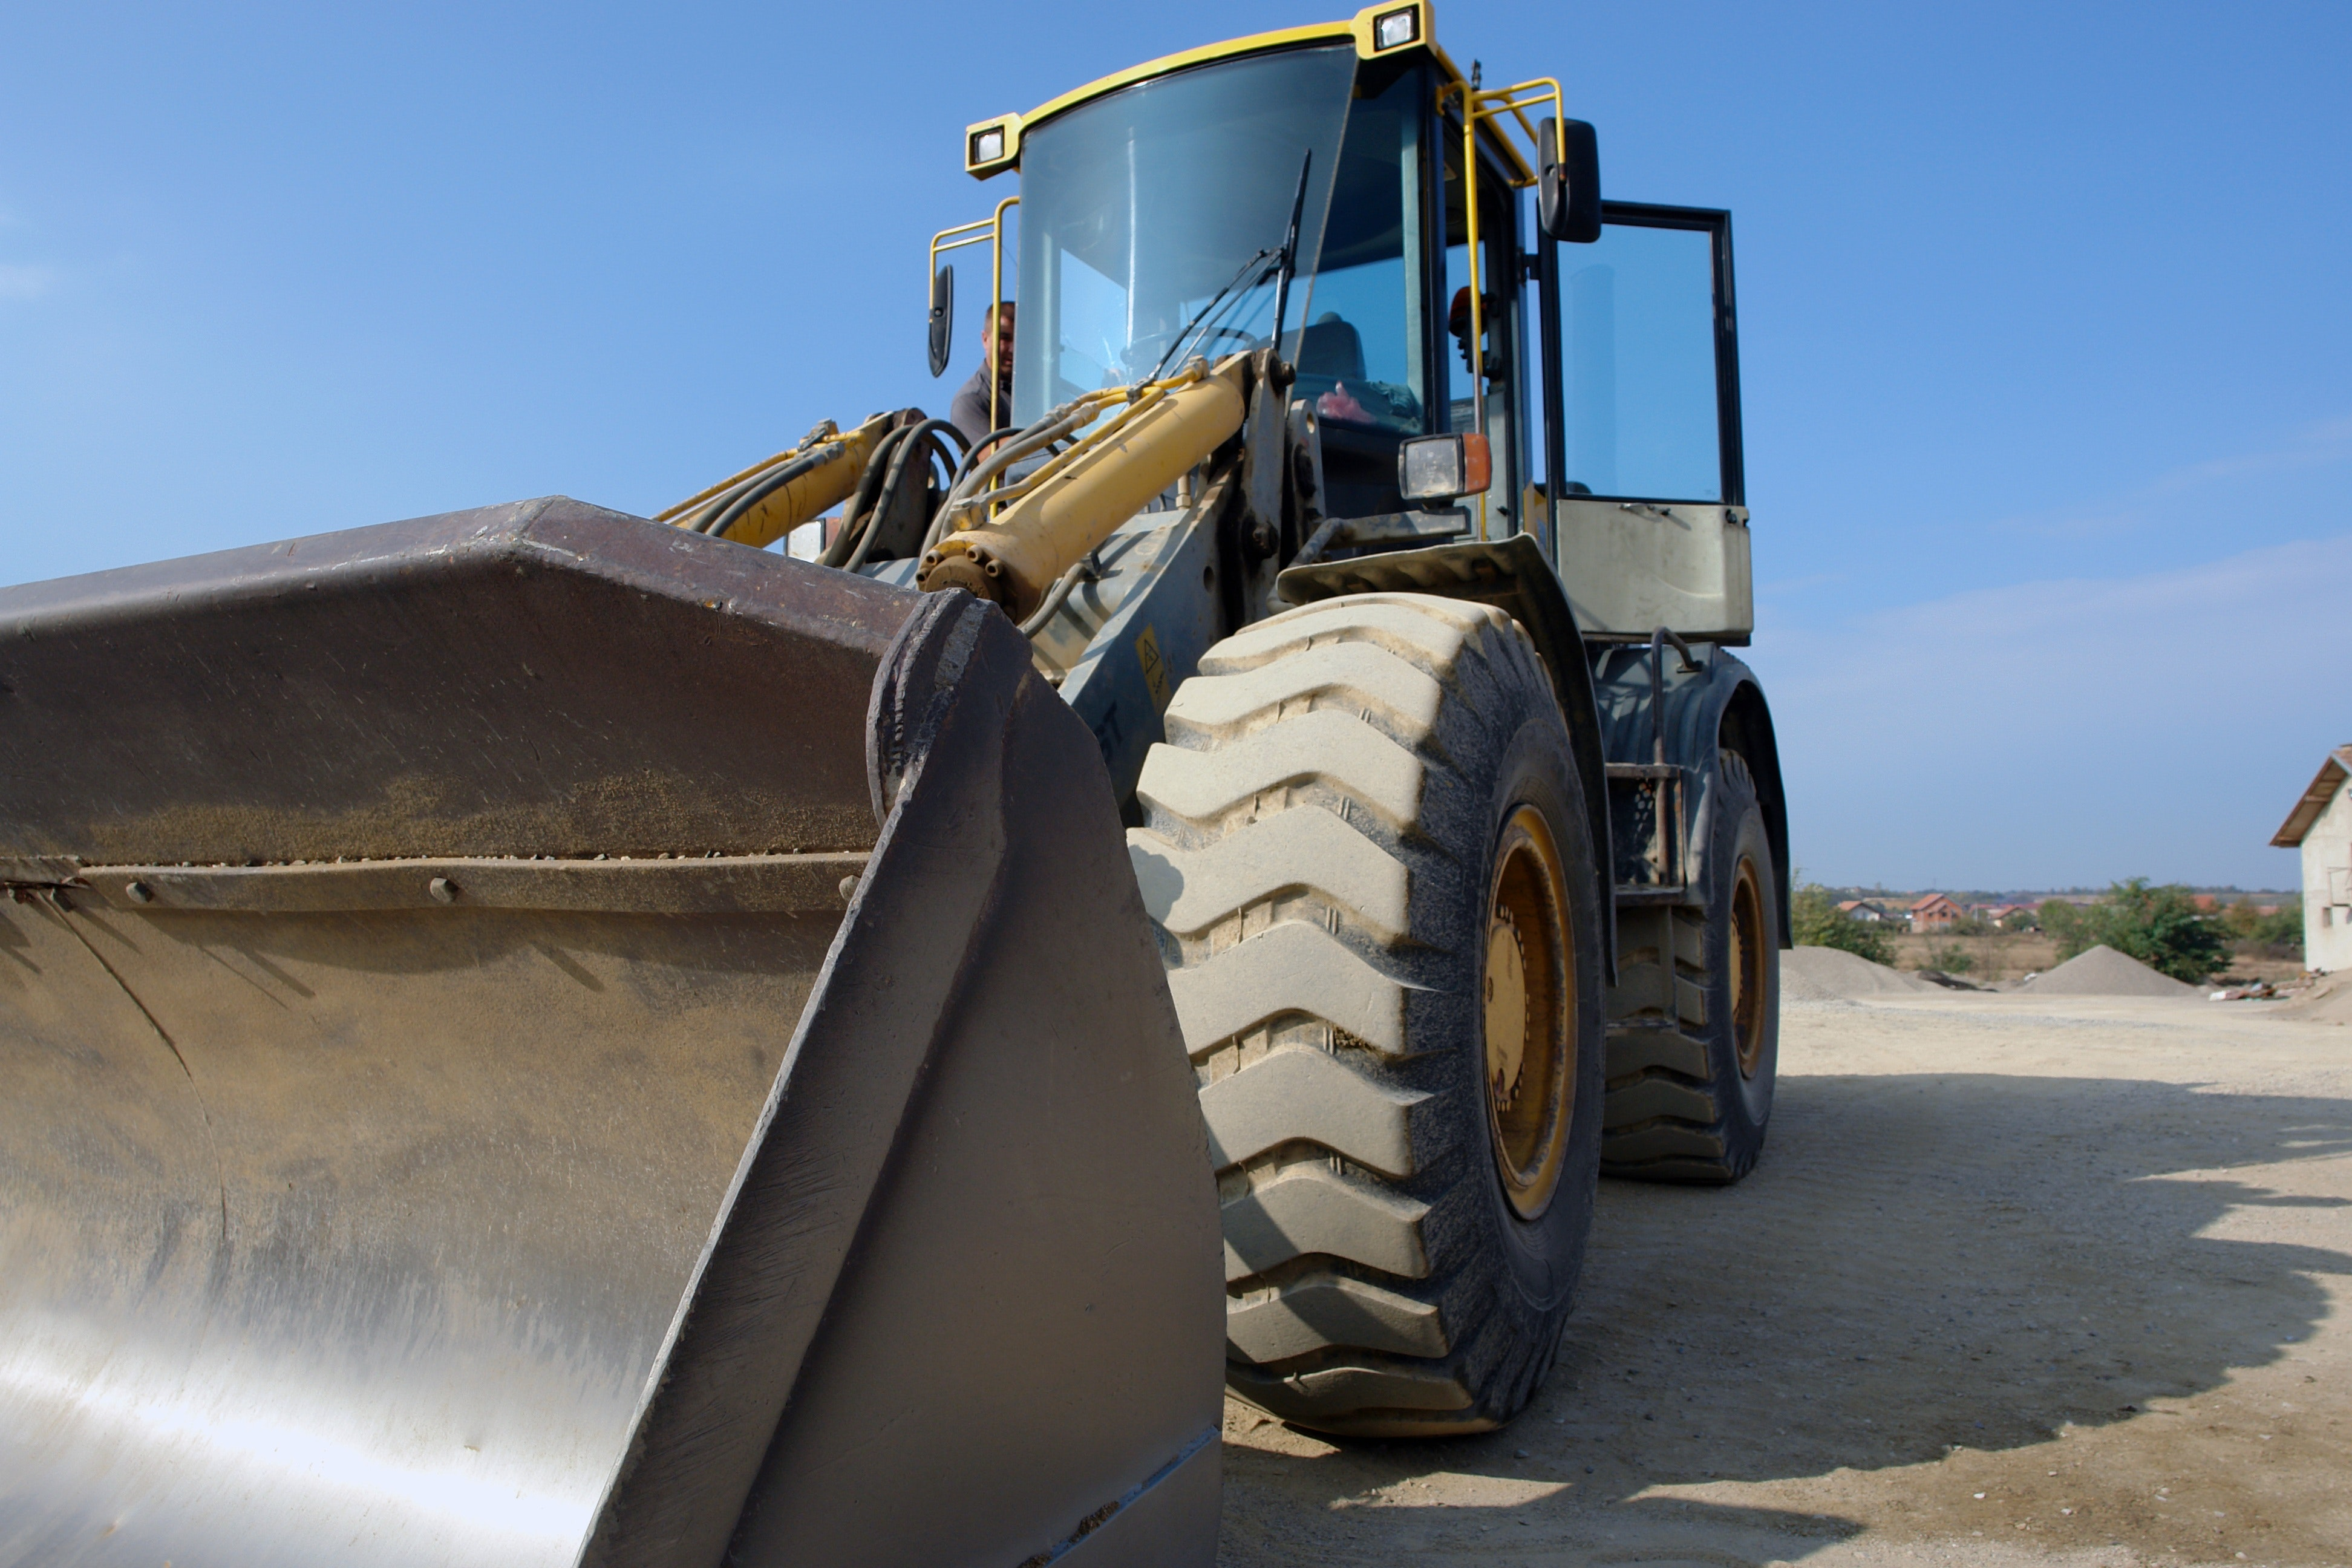 A tractor is one of the many vehicles we can supply parts for